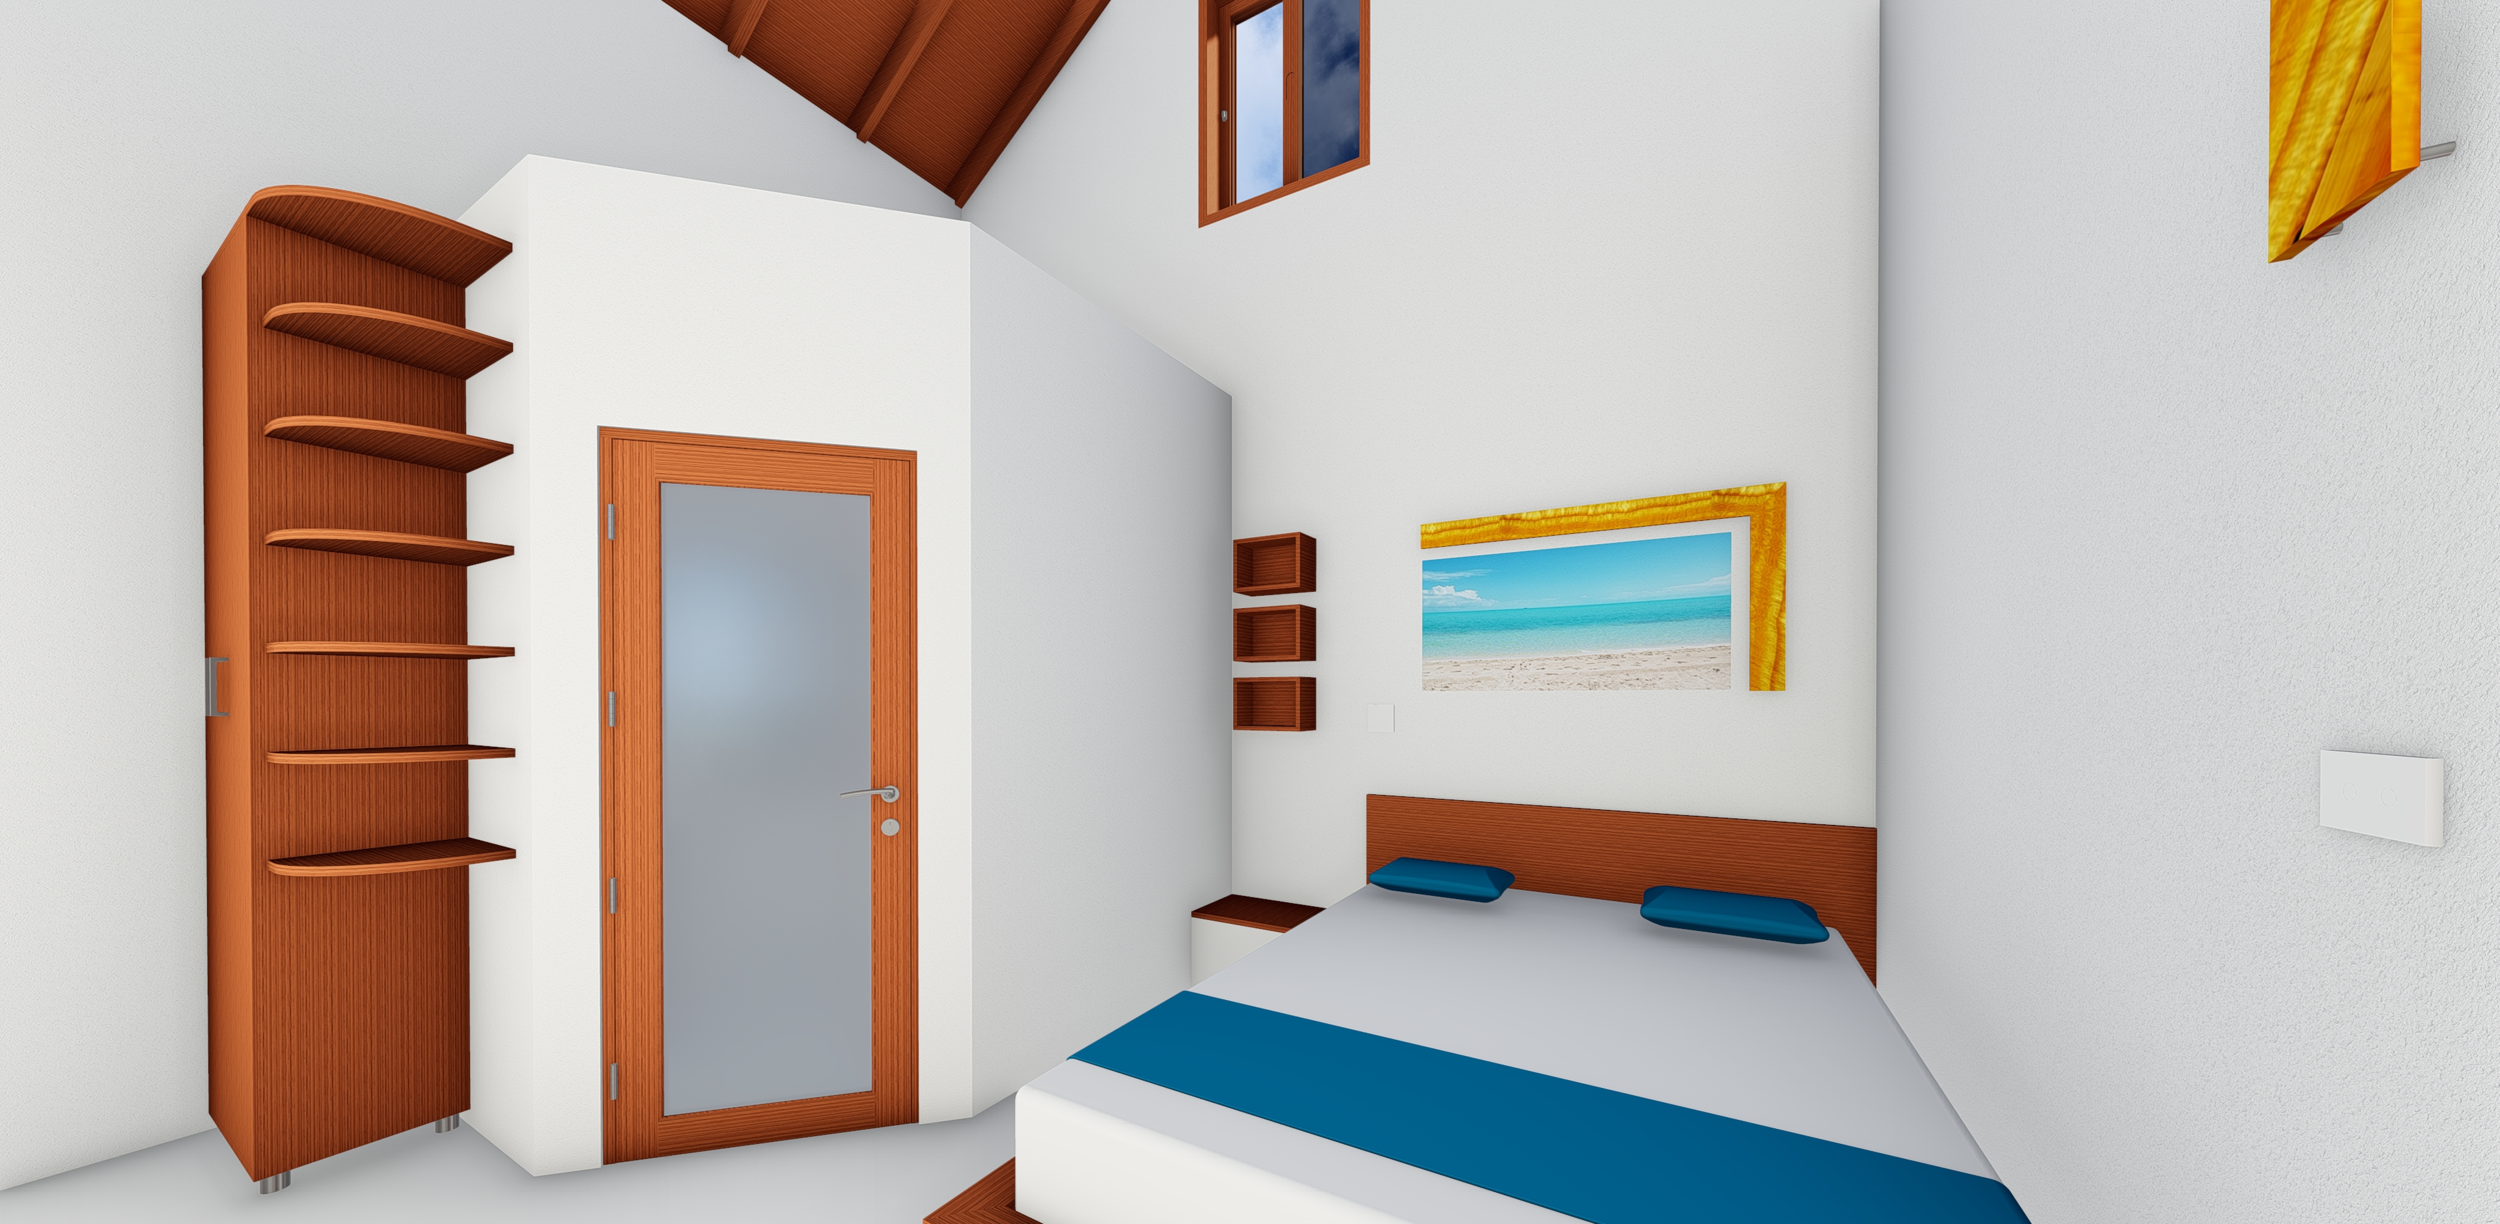 Holiday Home - Tower Inside (Day) 3 - Print Size.png